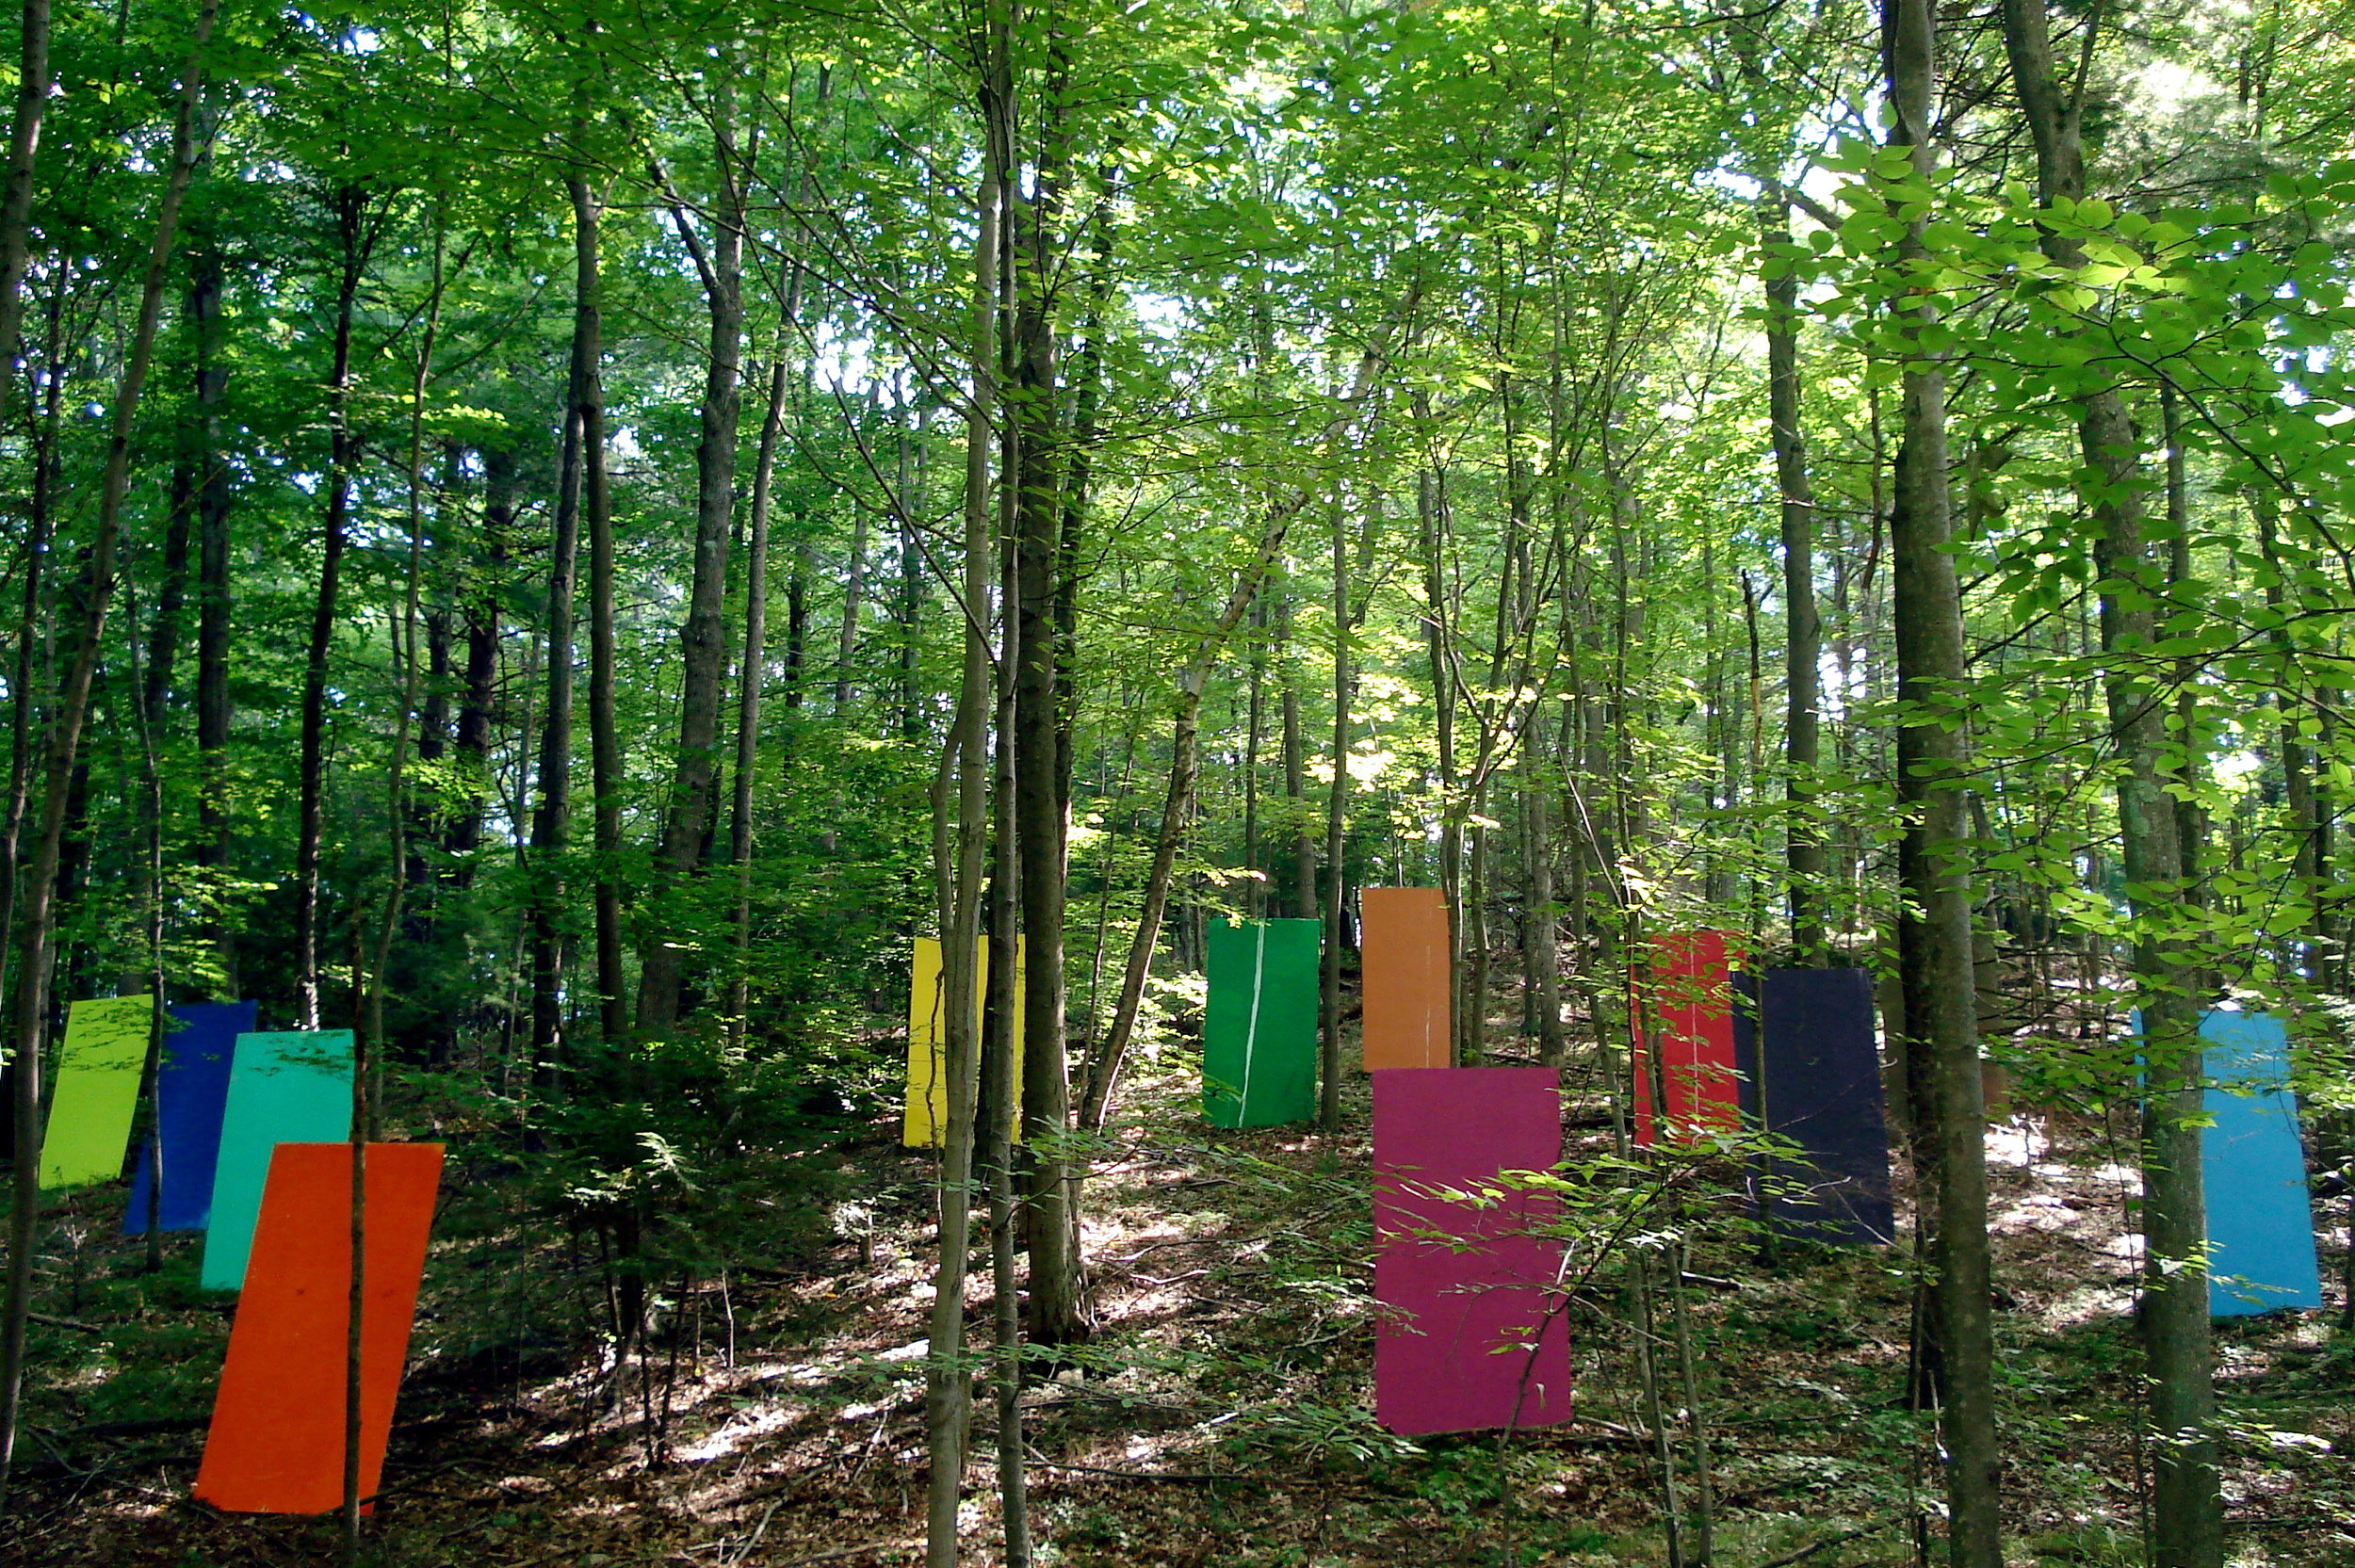 Color Installation, Albers Foundation, CT USA 2007